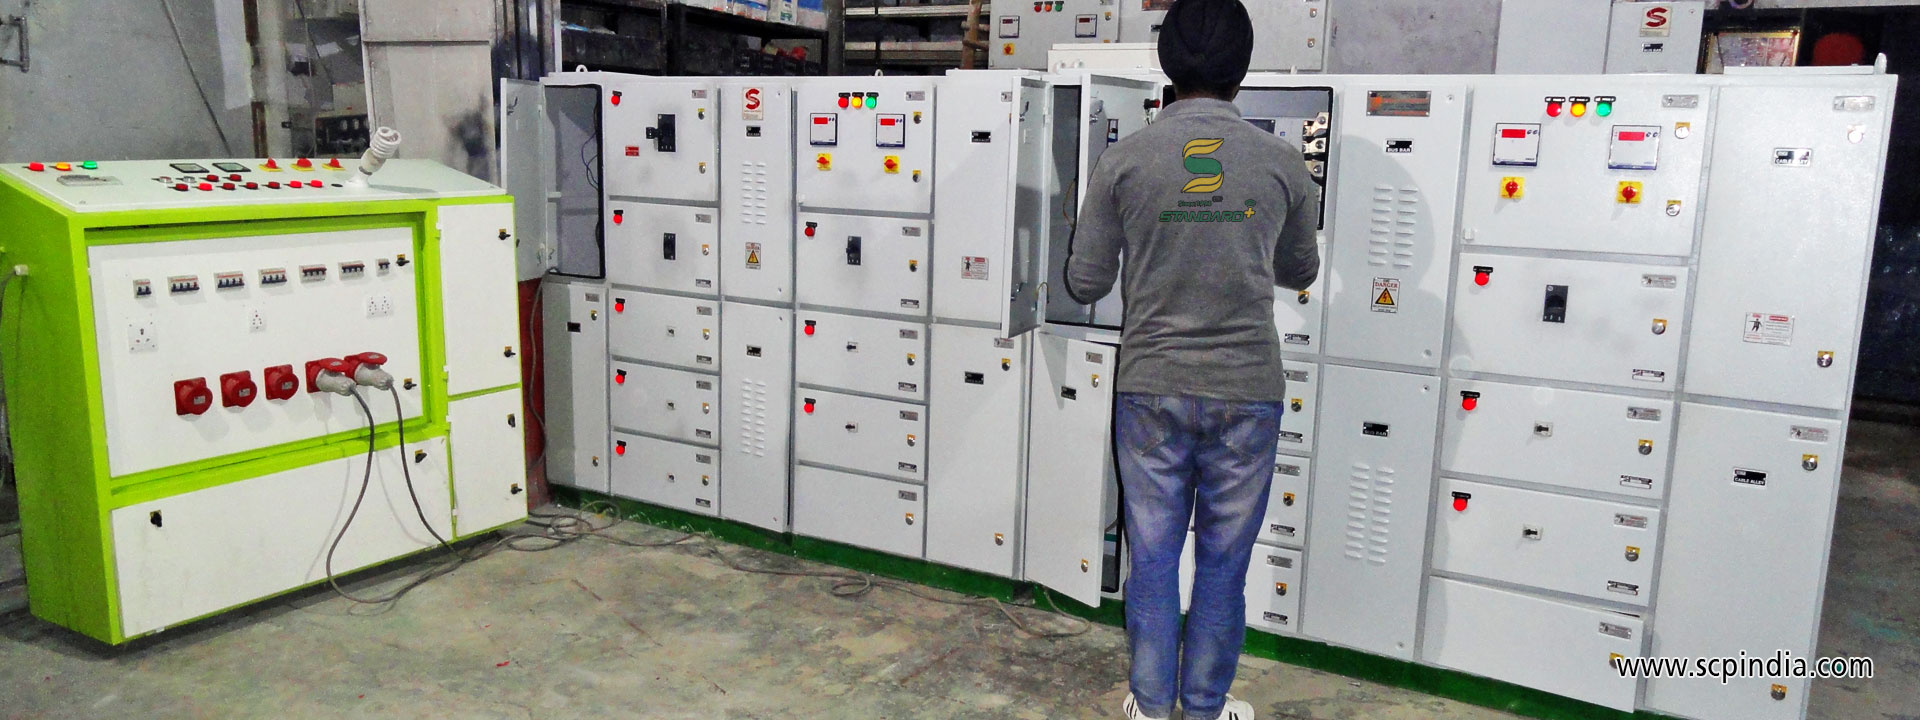 electrical control panel manufacturers in india punjab jammu himachal pradesh